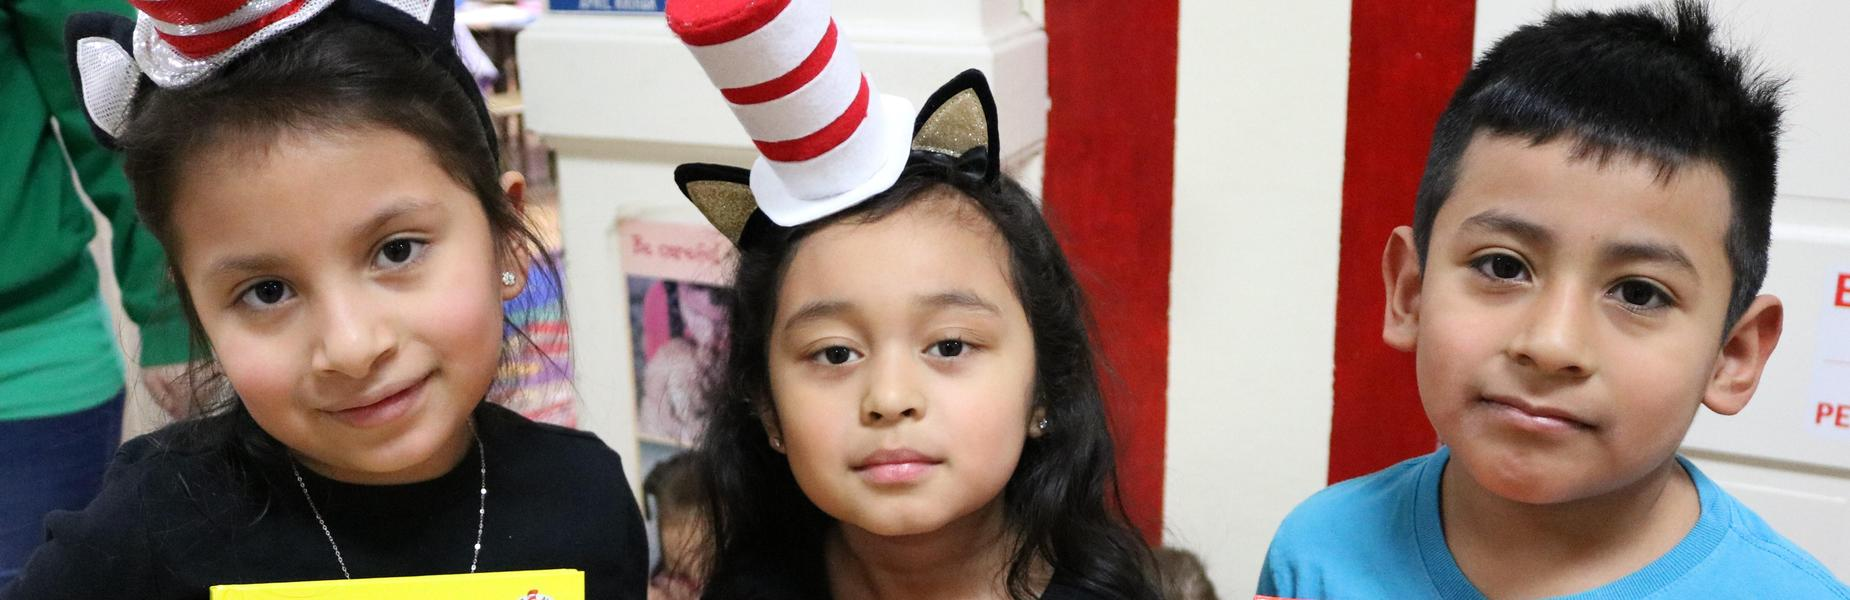 Photo of three 2nd graders wearing Cat in the Hat hats during Read Across America Day.